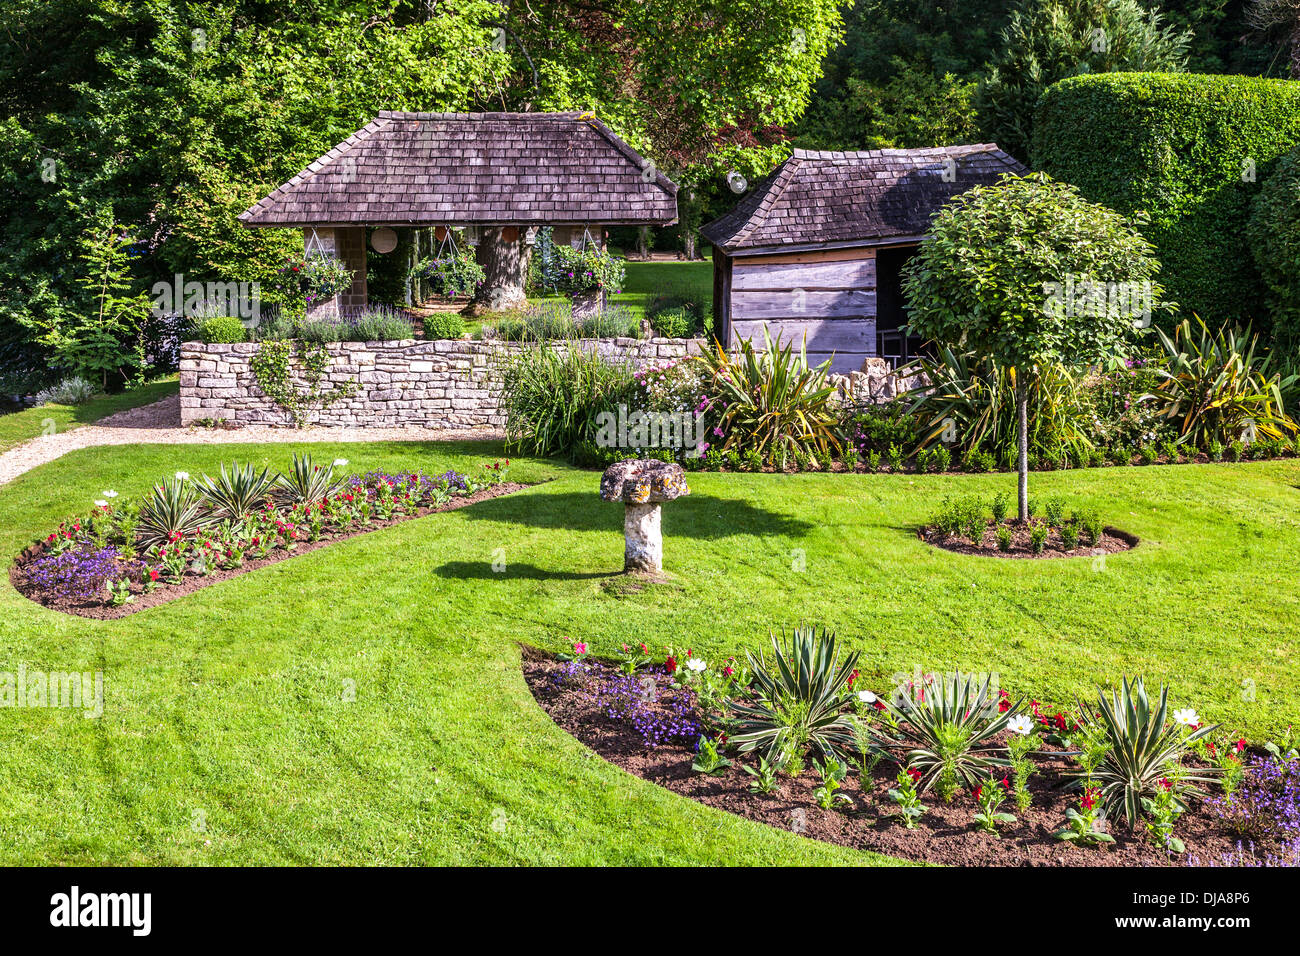 The pretty landscaped garden of the Swan Hotel in the Cotswold village of Bibury in the Coln Valley. - Stock Image